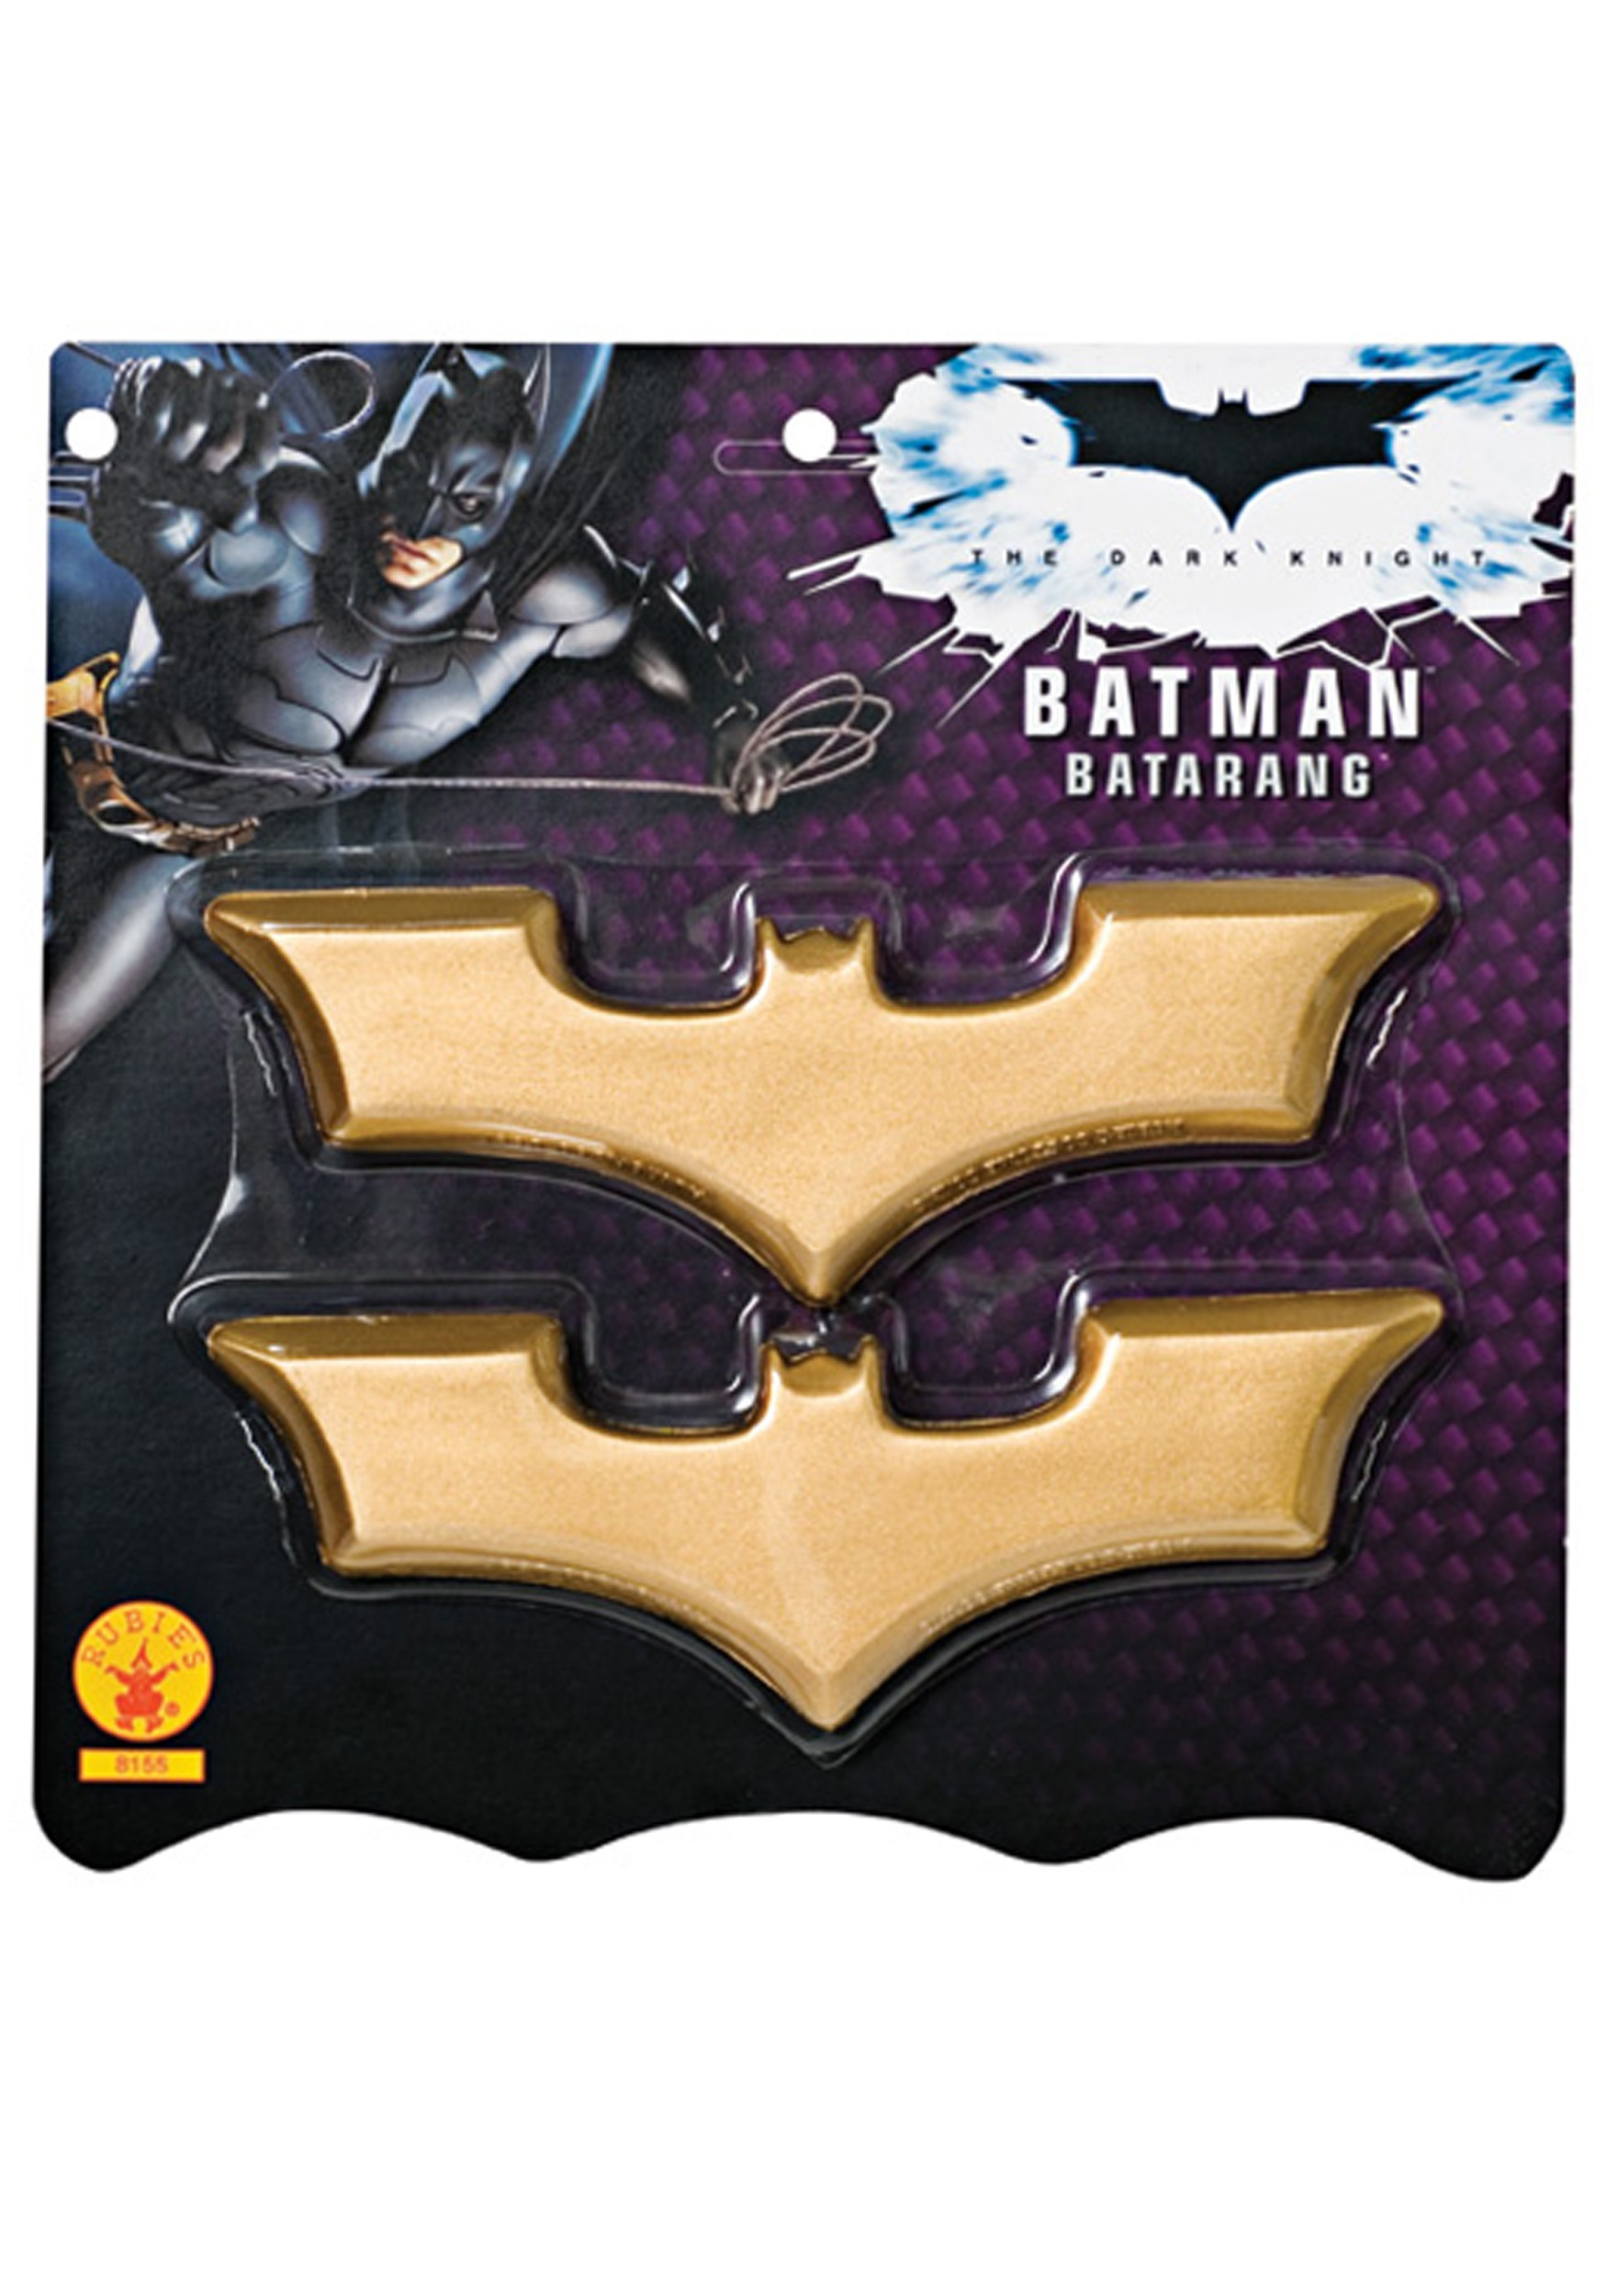 Batgirl costumes, Batman for kids, Catwomen, Grappling hooks and Joker masks! Batman is an infamous comic book superhero that first came on the scene in the 's. Since that time, Batman has appeared in many DC Comics over the years and has become .